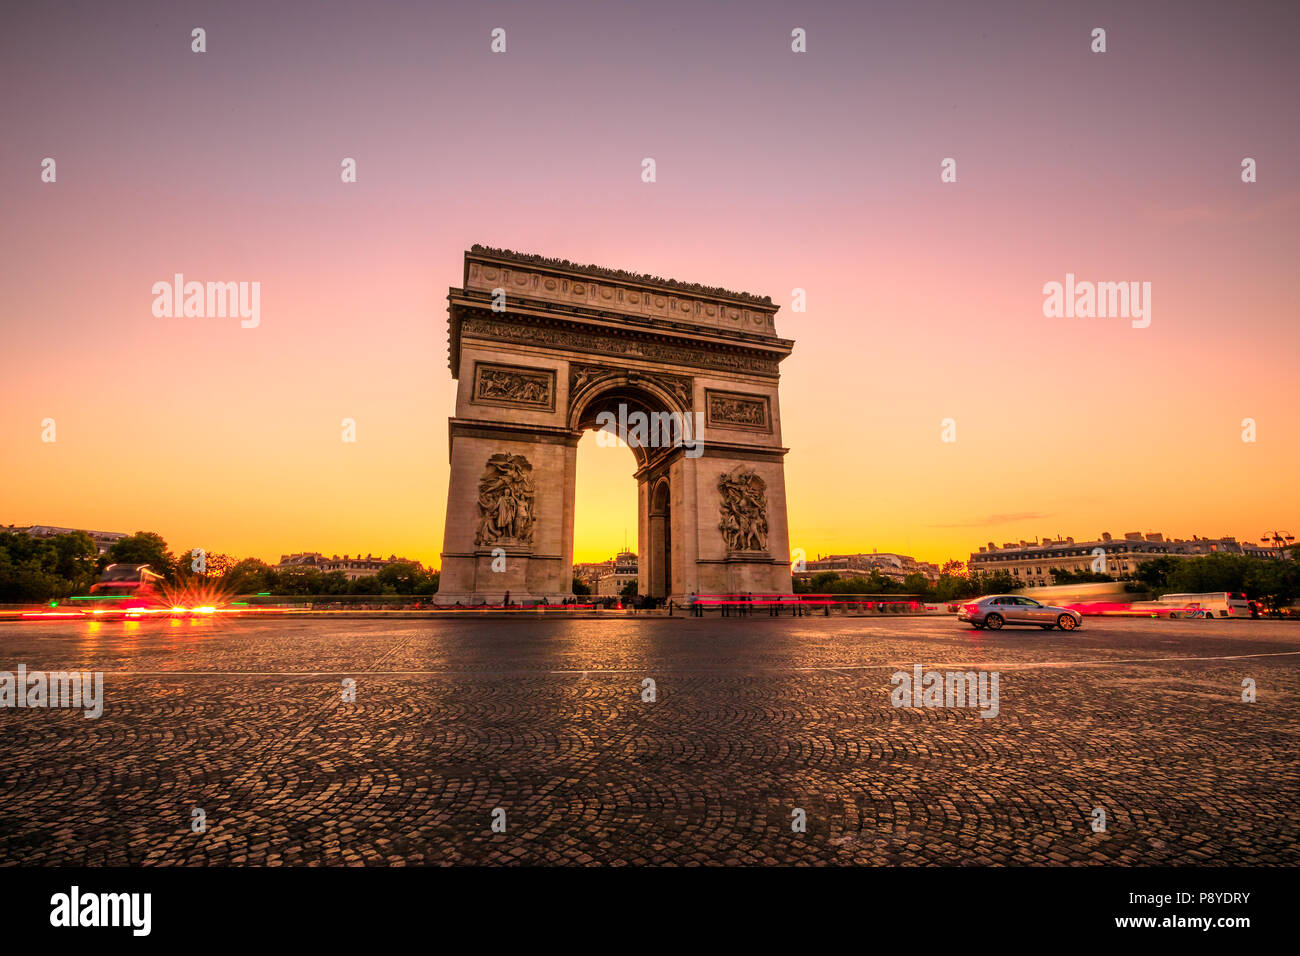 Arch of triumph at twilight. Arc de Triomphe at end of Champs Elysees in Place Charles de Gaulle with cars and trails of lights. Popular landmark and tourist attraction in Paris capital of France. Stock Photo